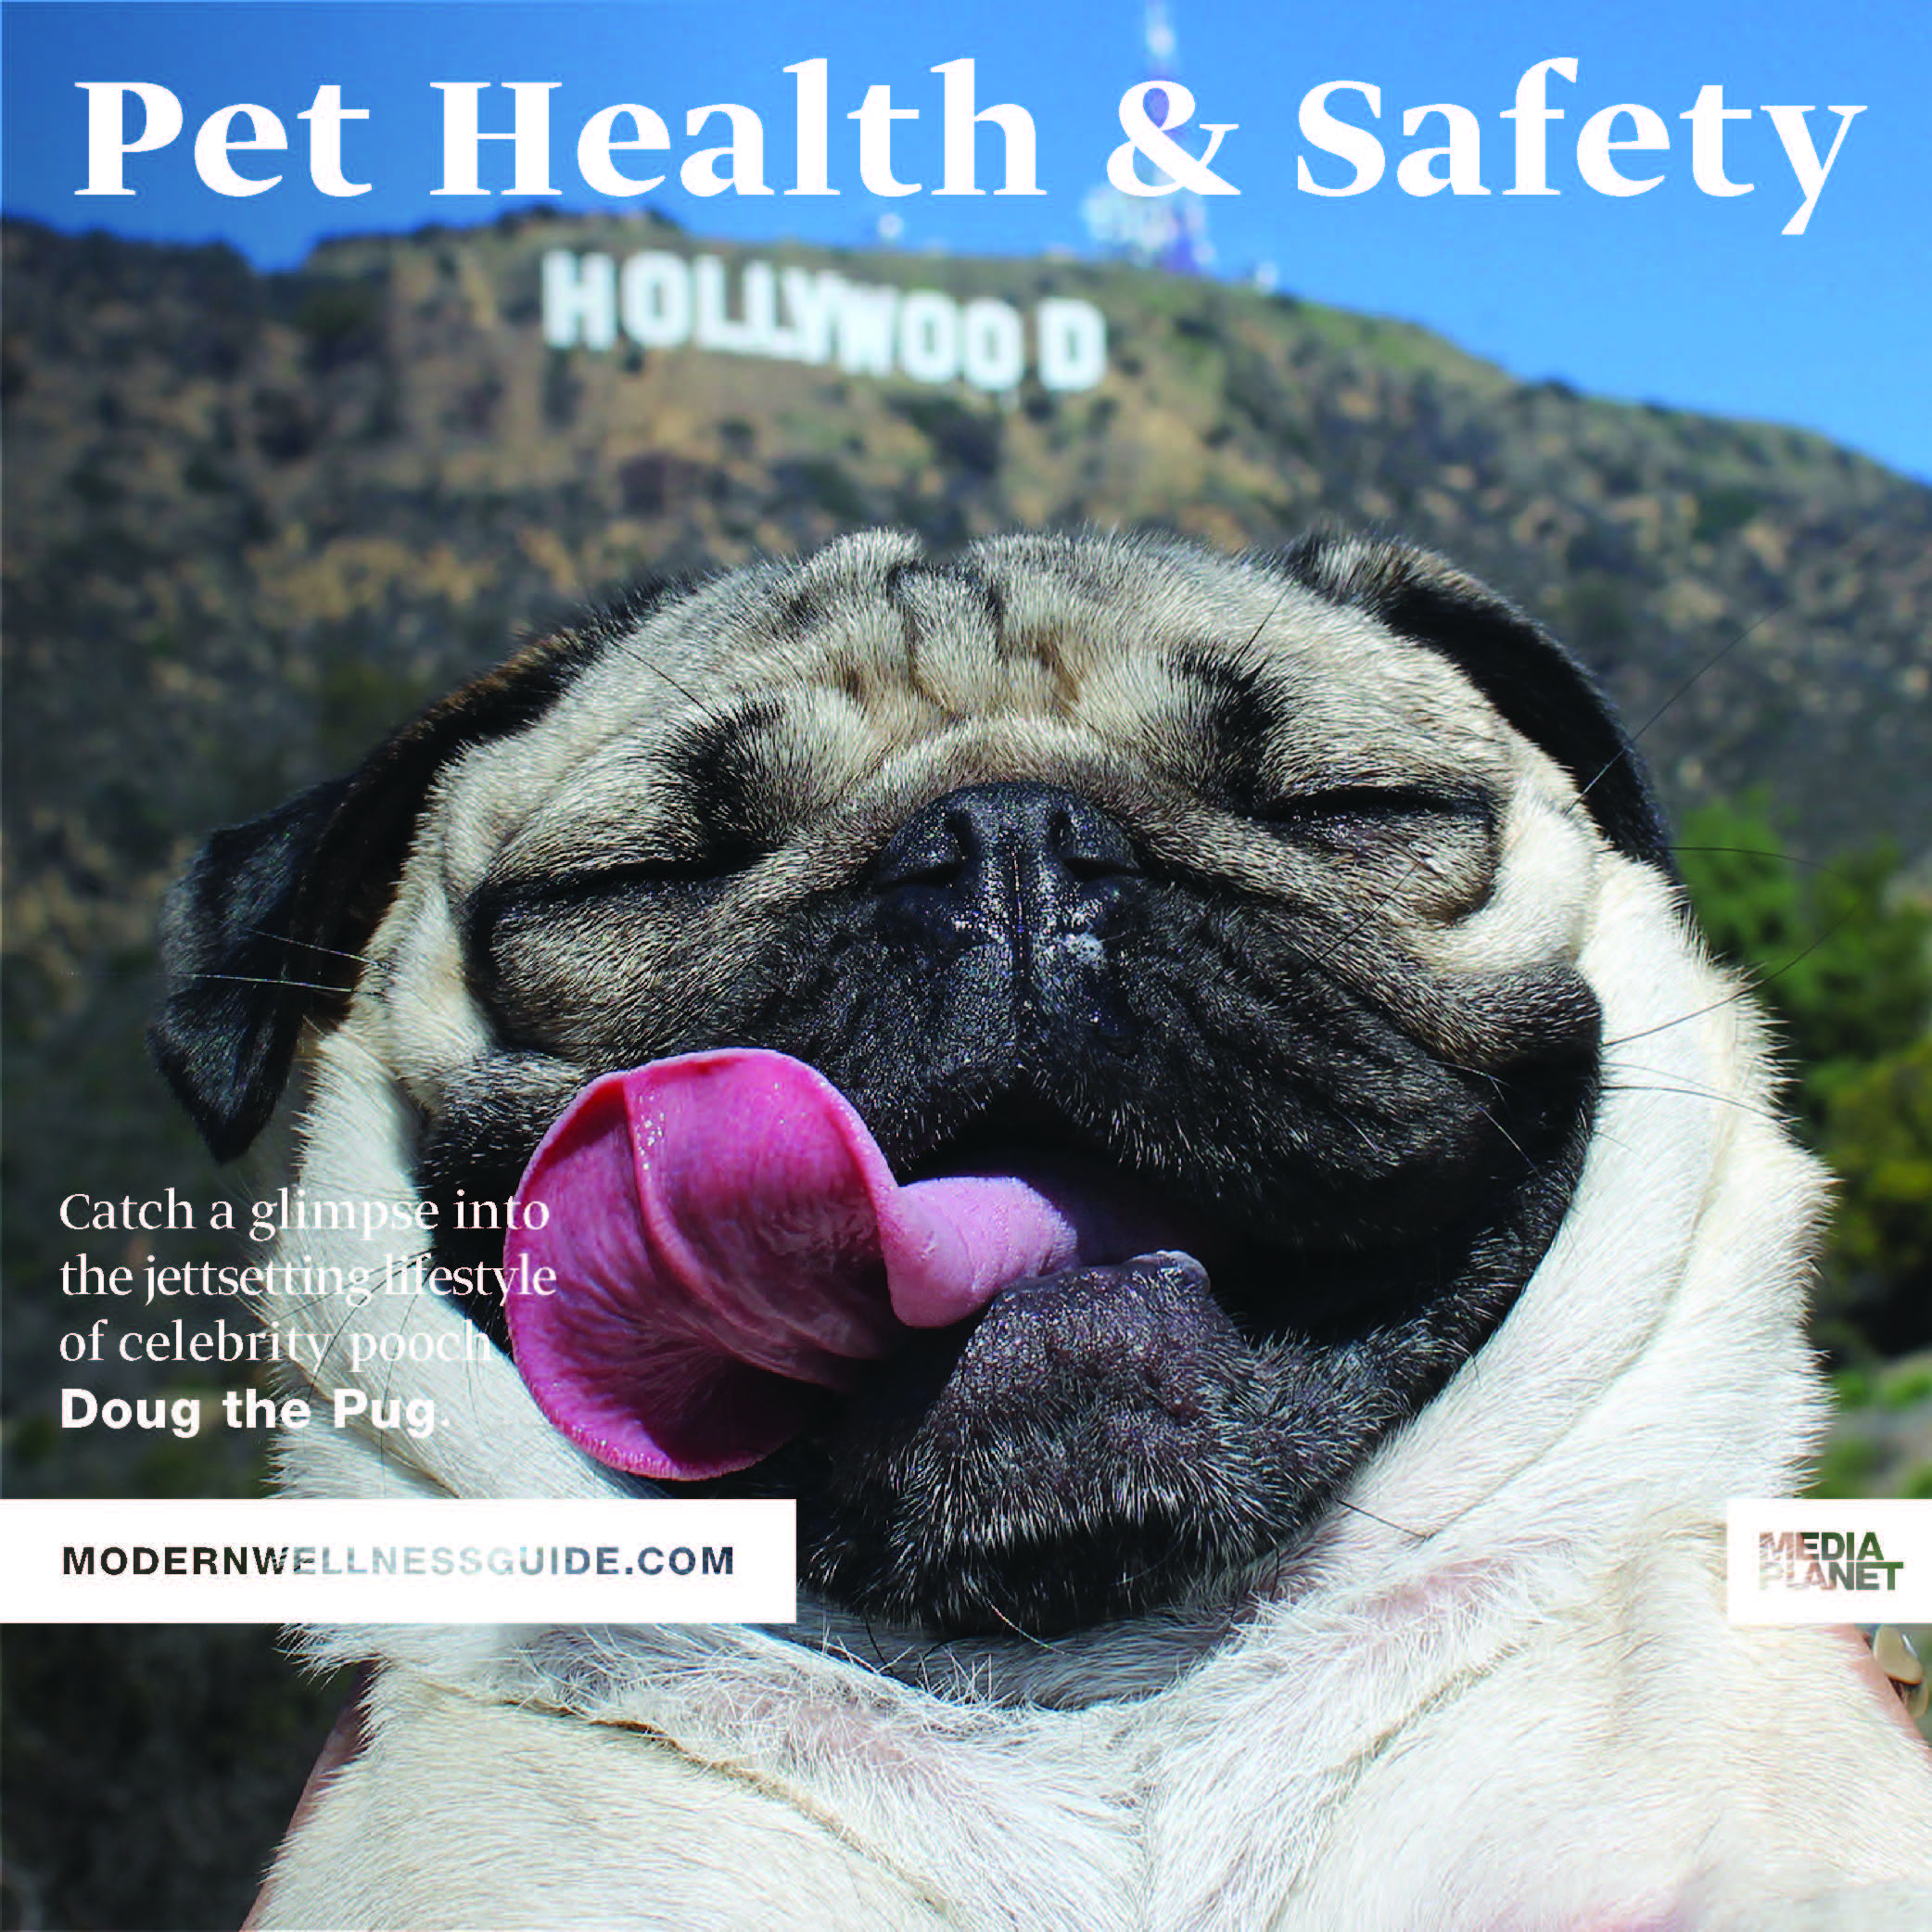 Mediaplanet along with doug the pug the humane society and more mediaplanet along with doug the pug the humane society and more launches pet health safety campaign within usa today and online m4hsunfo